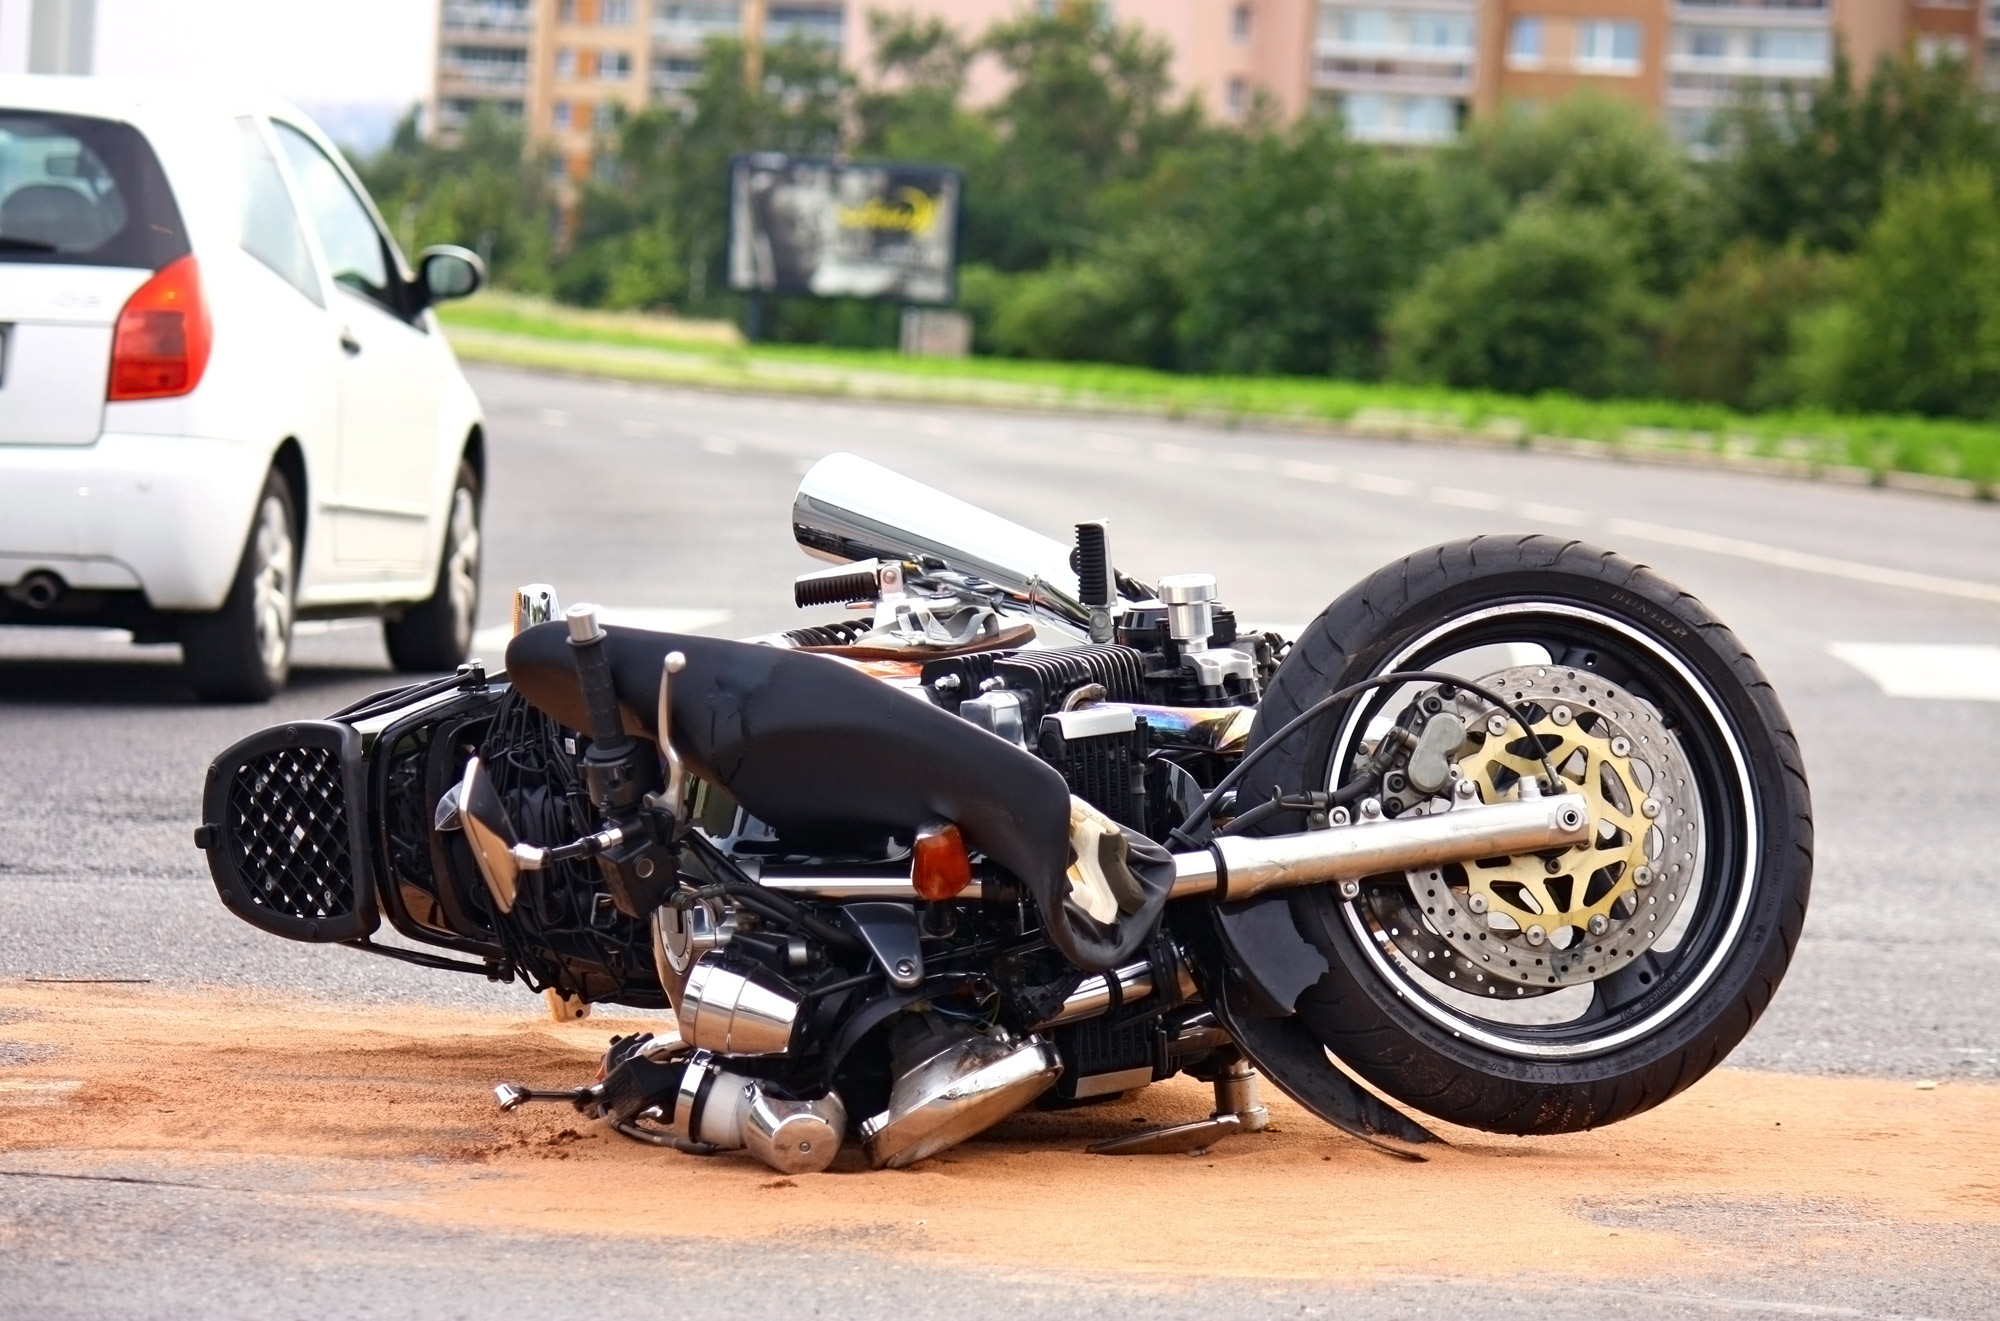 motorcycle on ground after accident with car